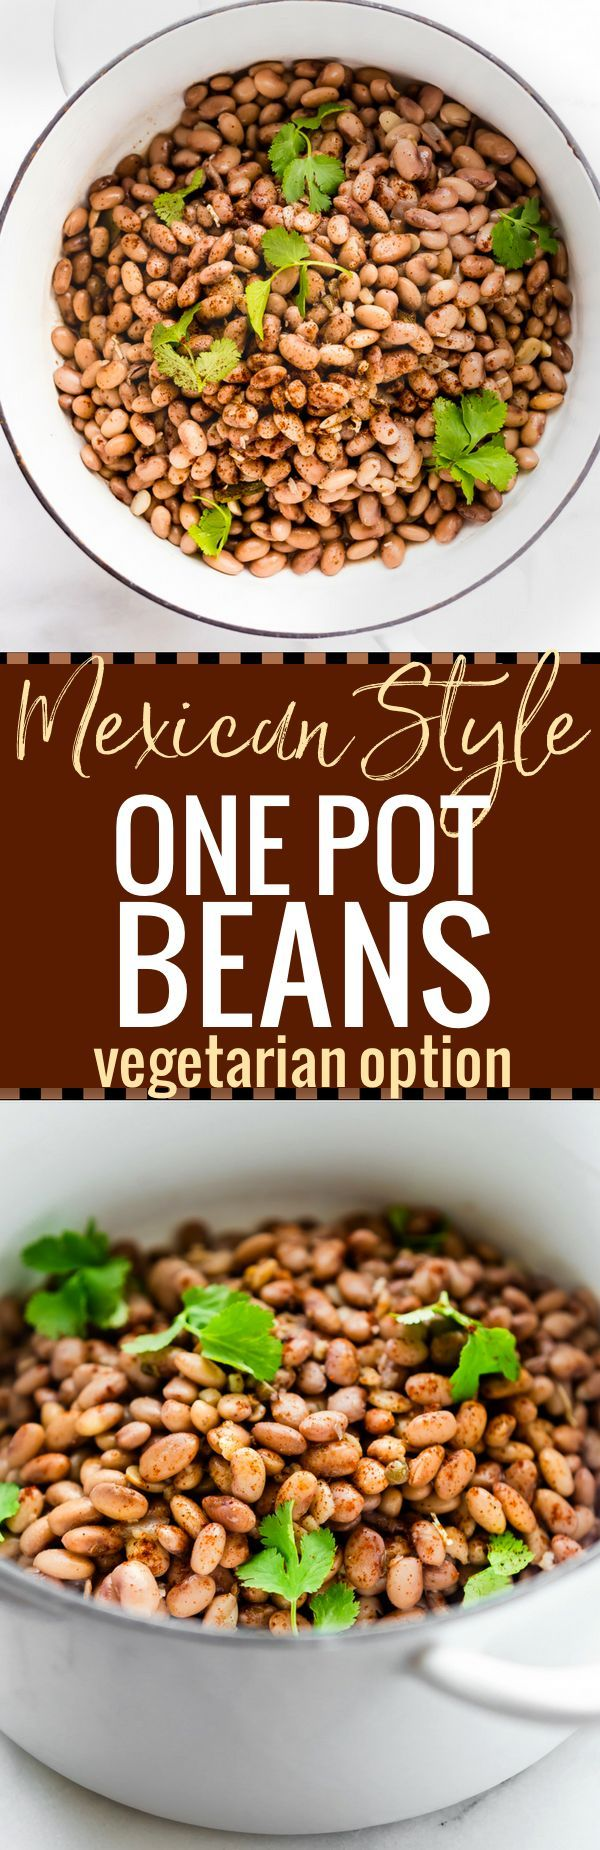 How to make Mexican Style One Pot Beans . This Mexican Pinto Beans recipe is slow cooked with Mexican spices and vegetables! Vegetarian option, healthy, and gluten free! An Easy to follow one pot recipe